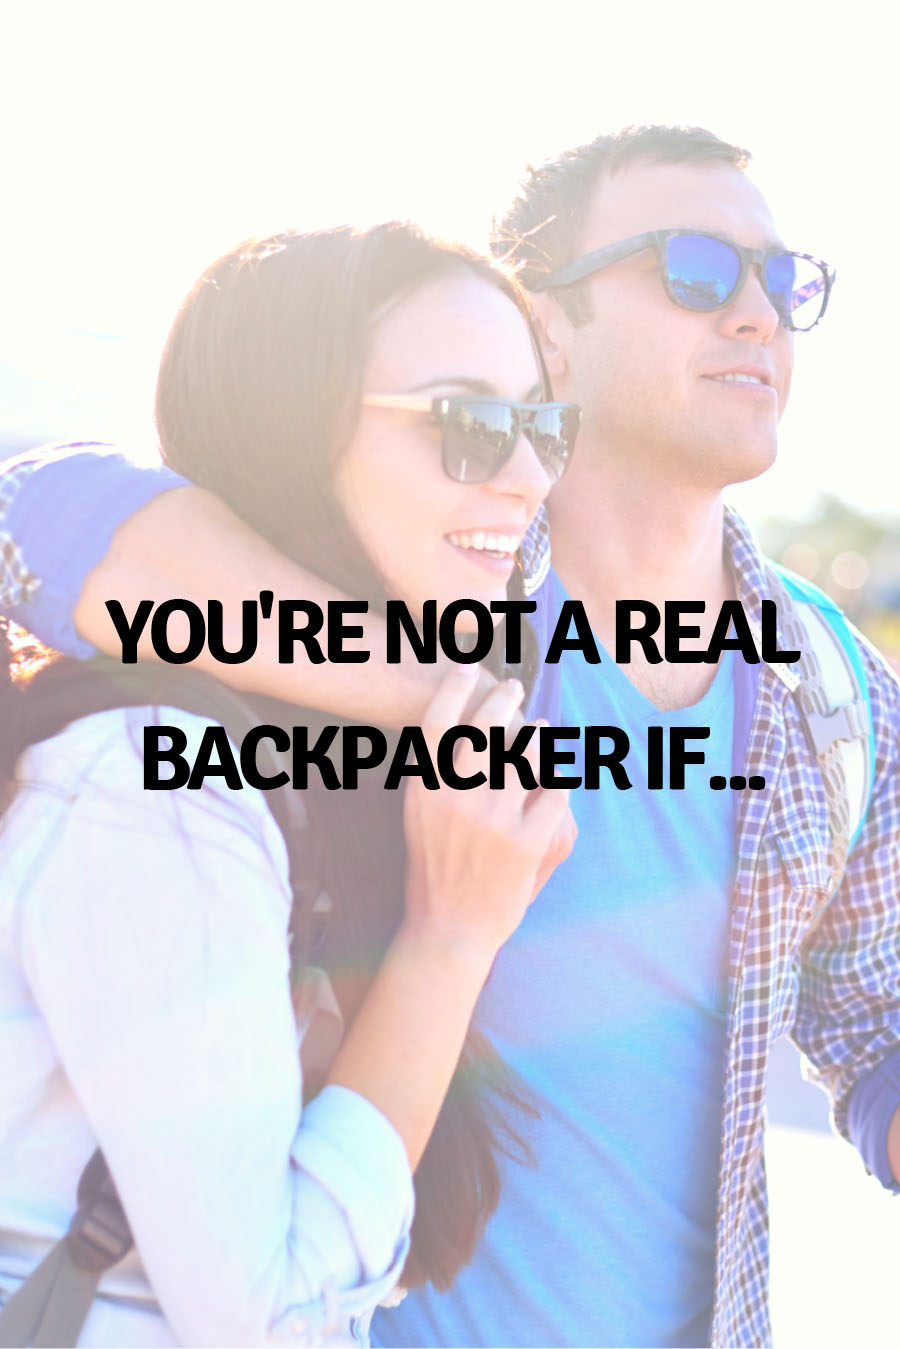 You're not a real backpacker if...